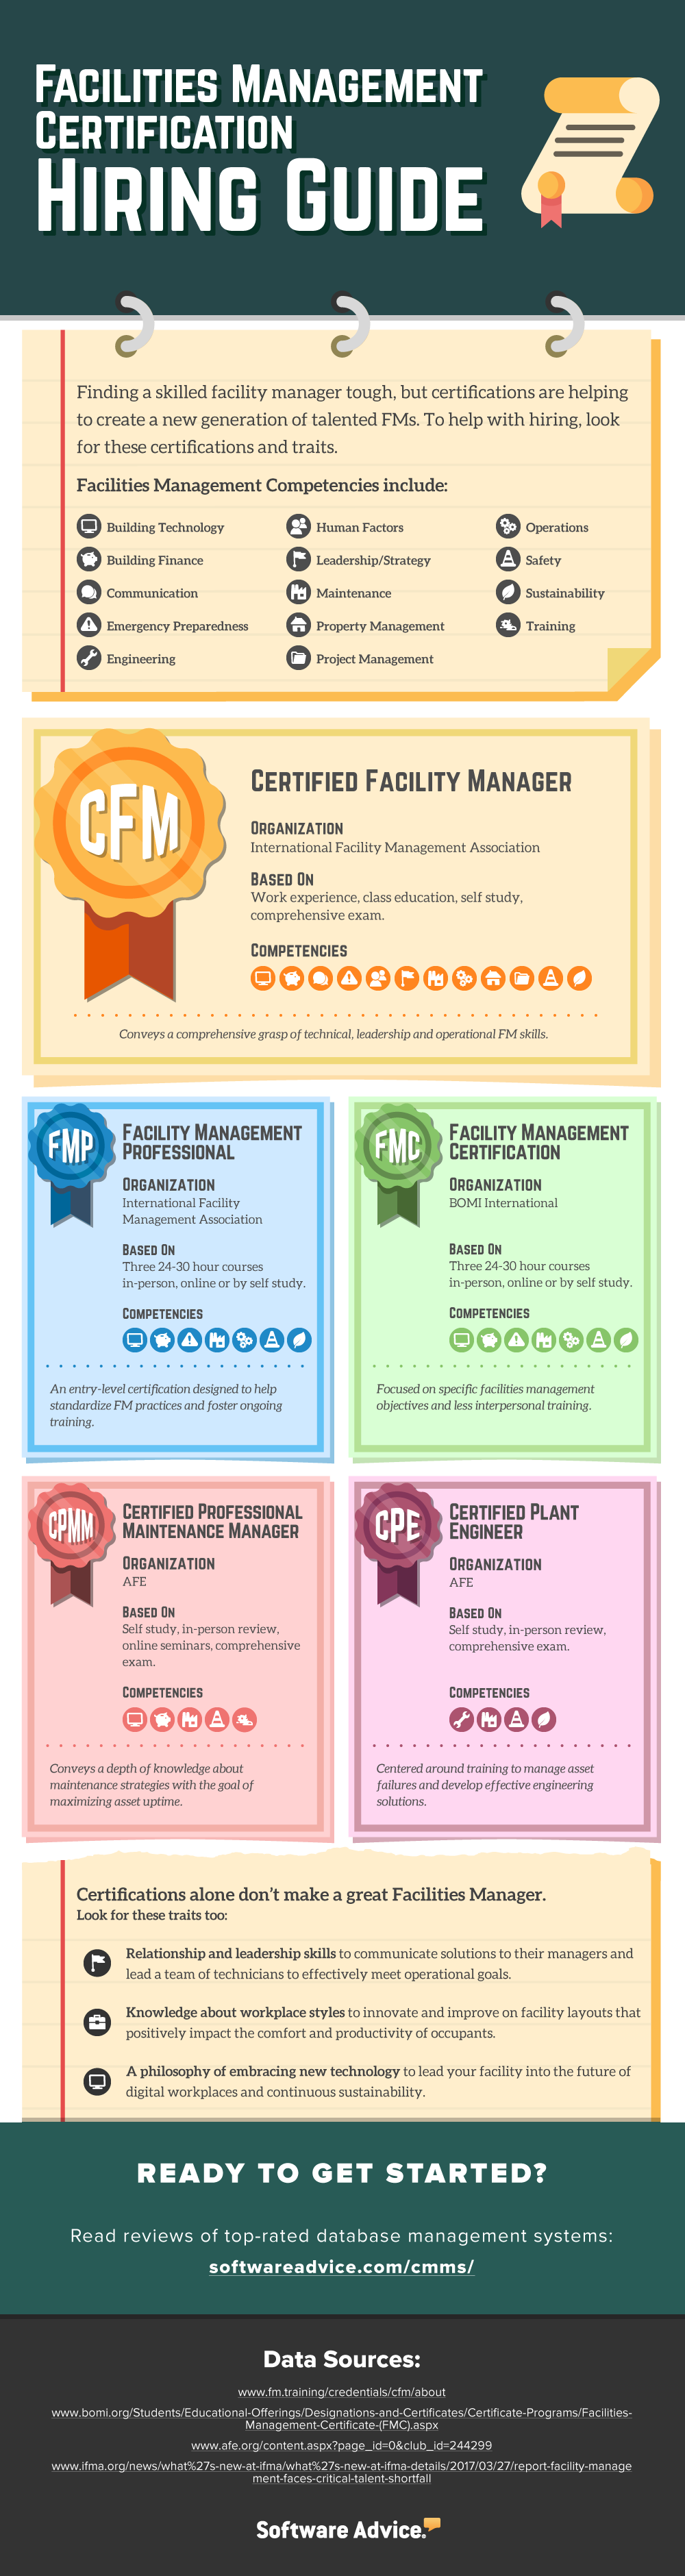 Facilities Management Certification Hiring Guide